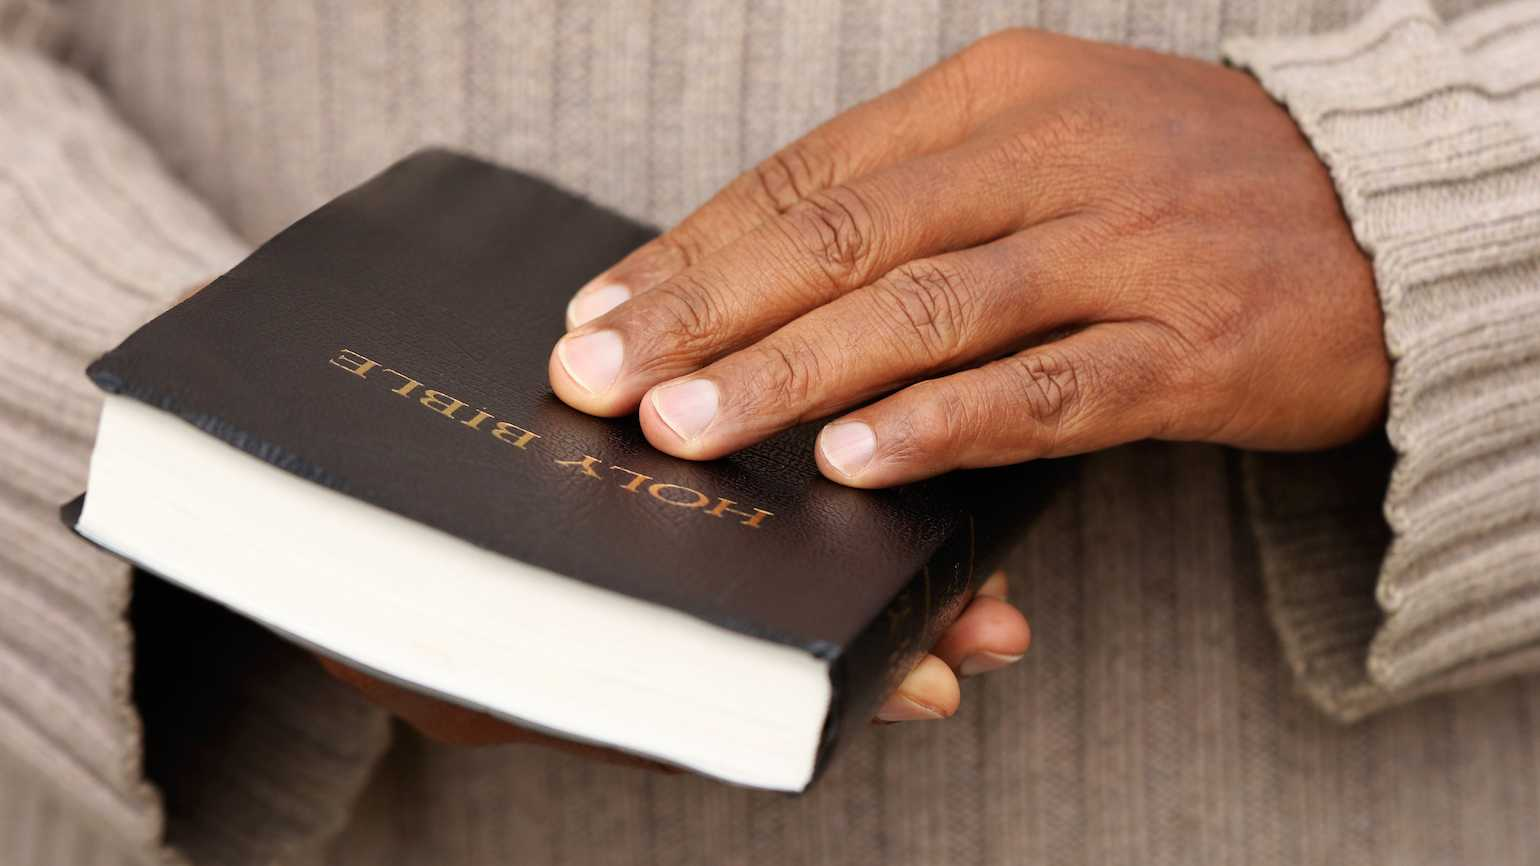 What The Revelation says about prayer